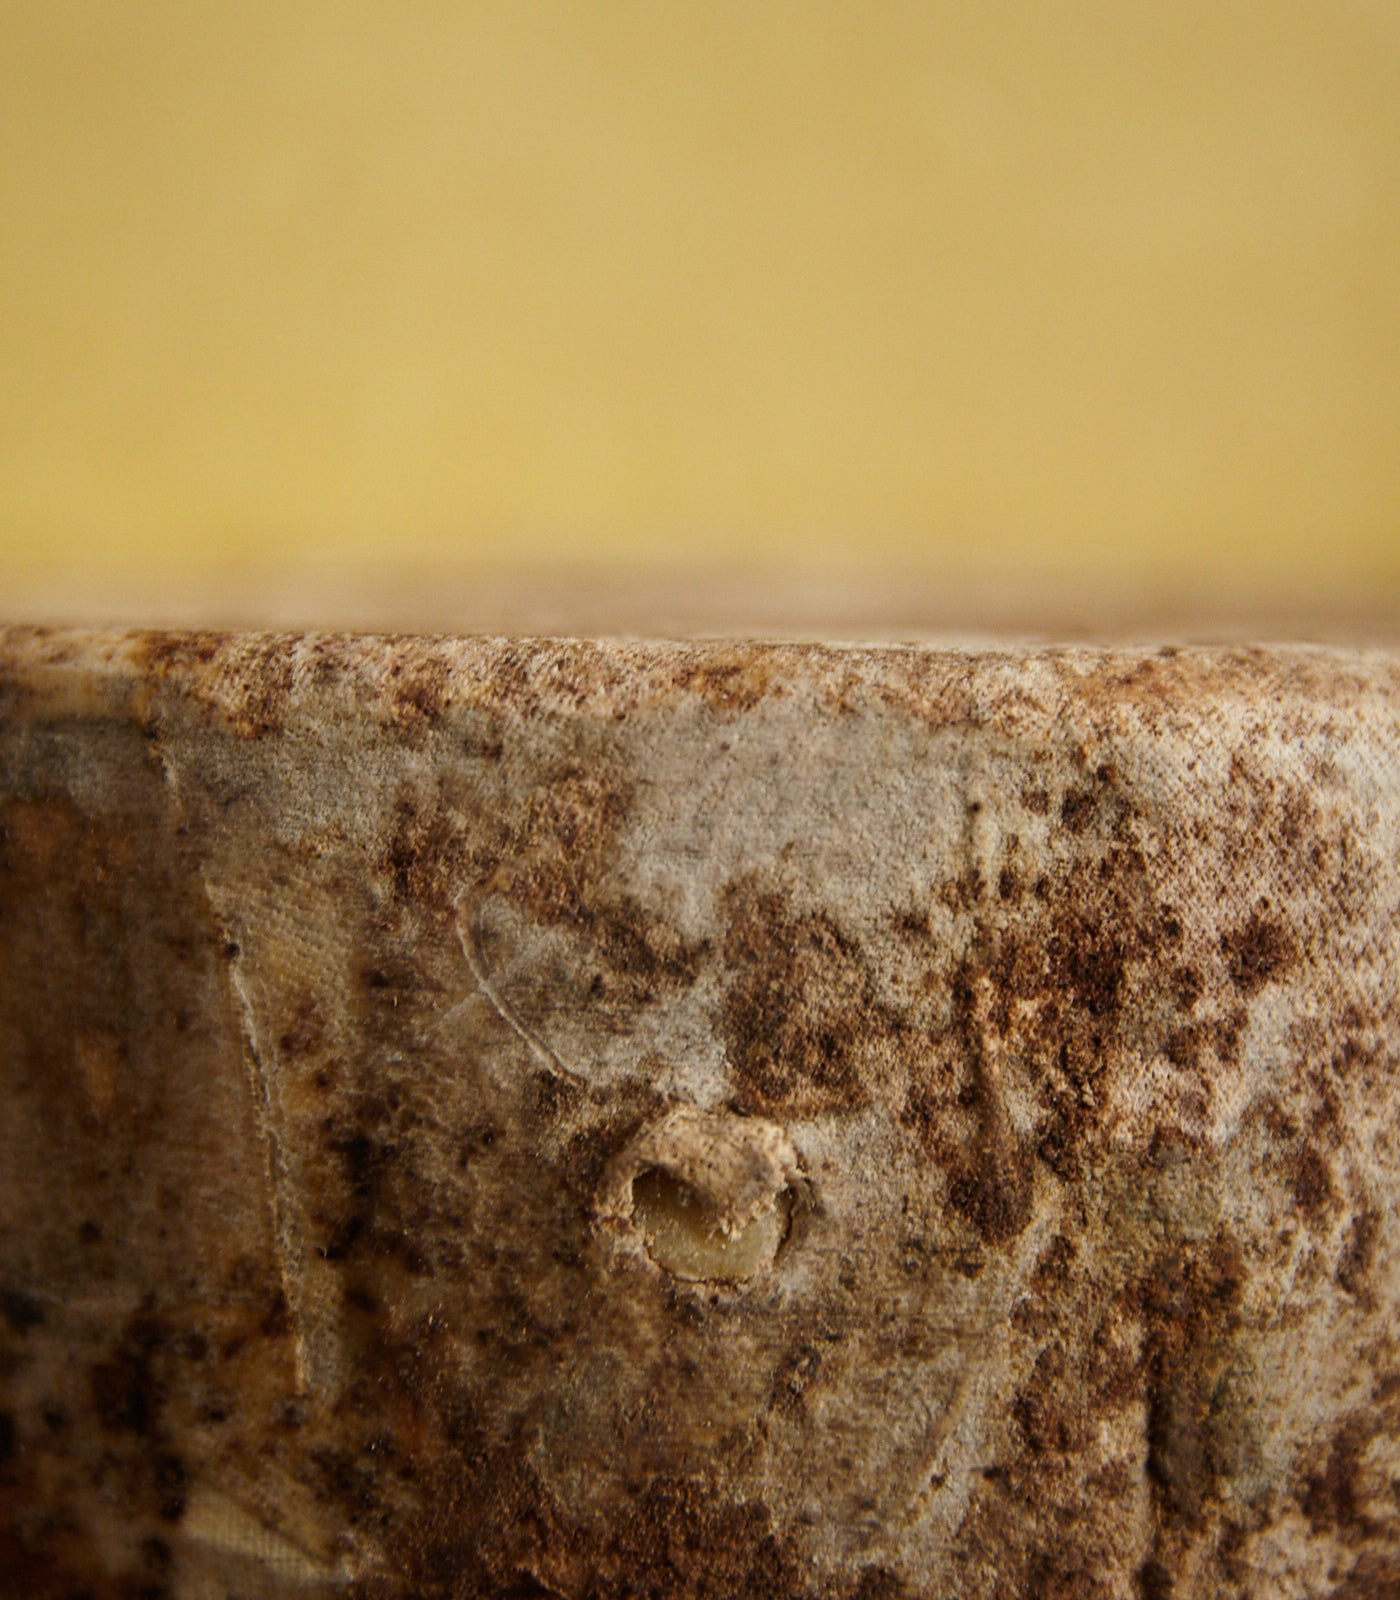 Close up of a cut Westcombe Cheddar cheese showing the cloth binding and golden-coloured paste